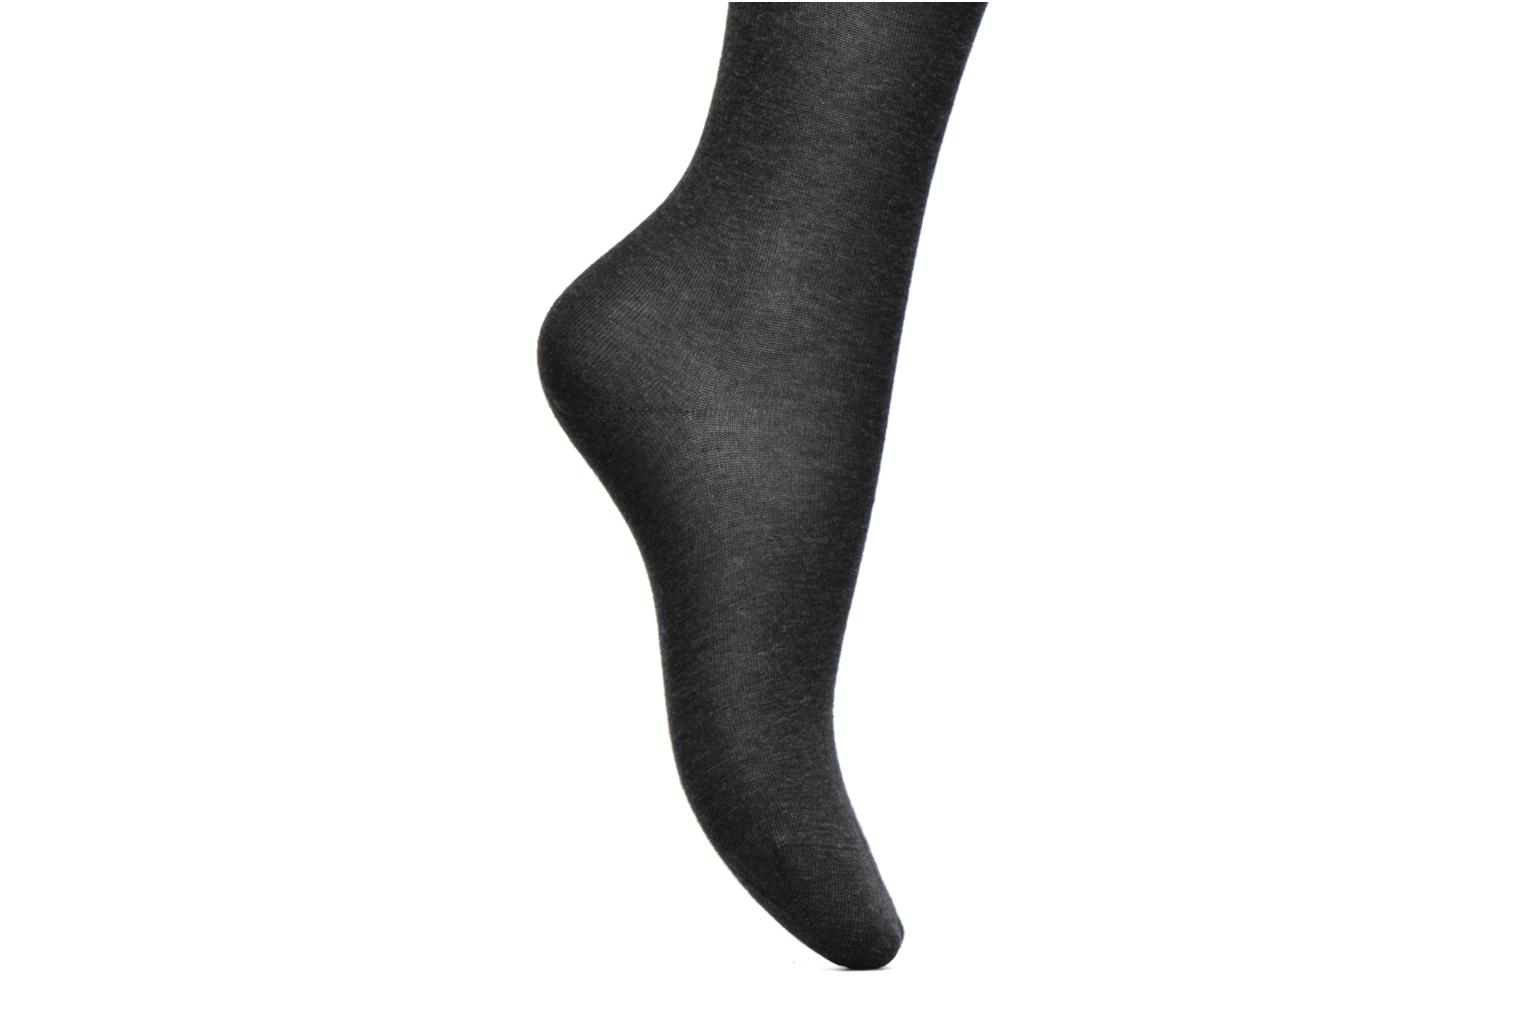 Collant coton velouté Anthracite - HZ7